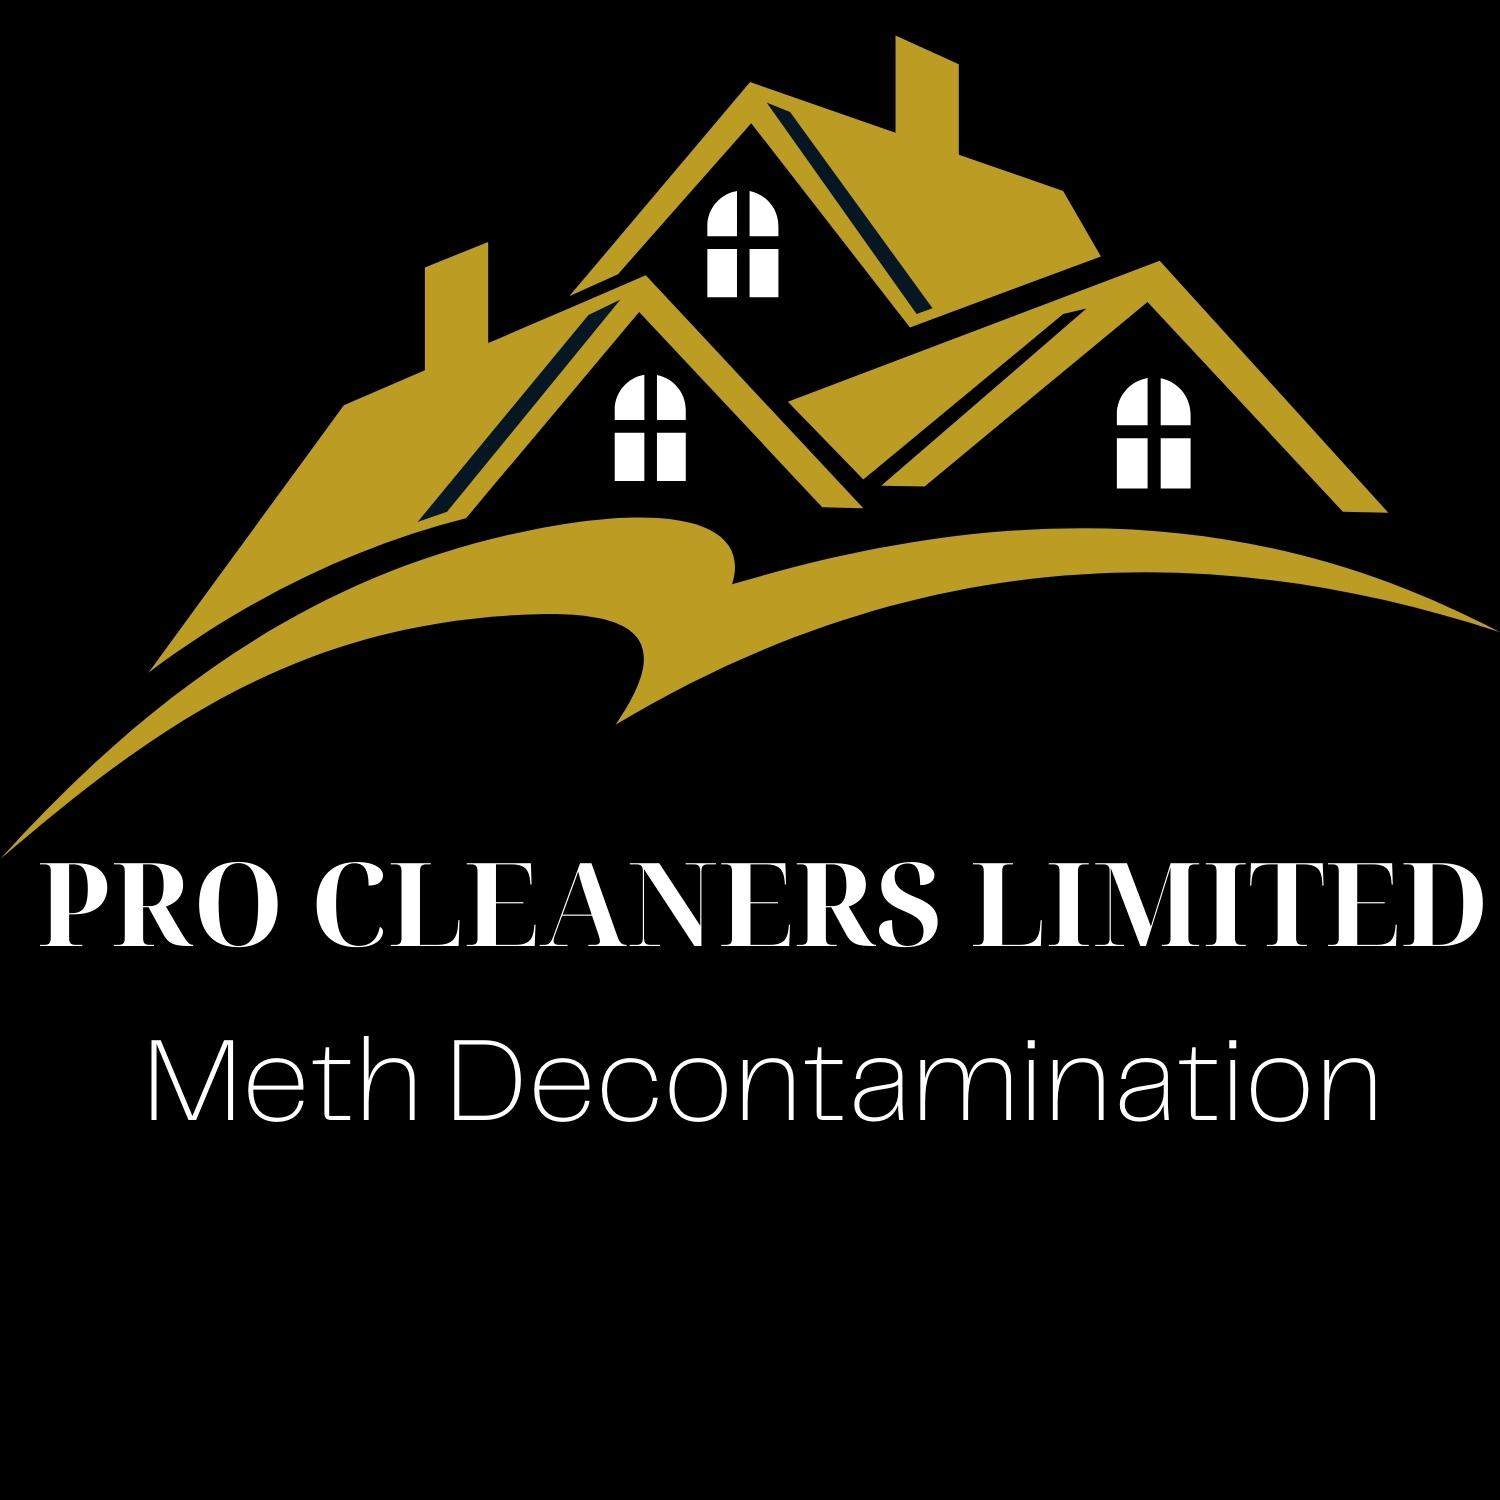 Pro Cleaners Limited Logo